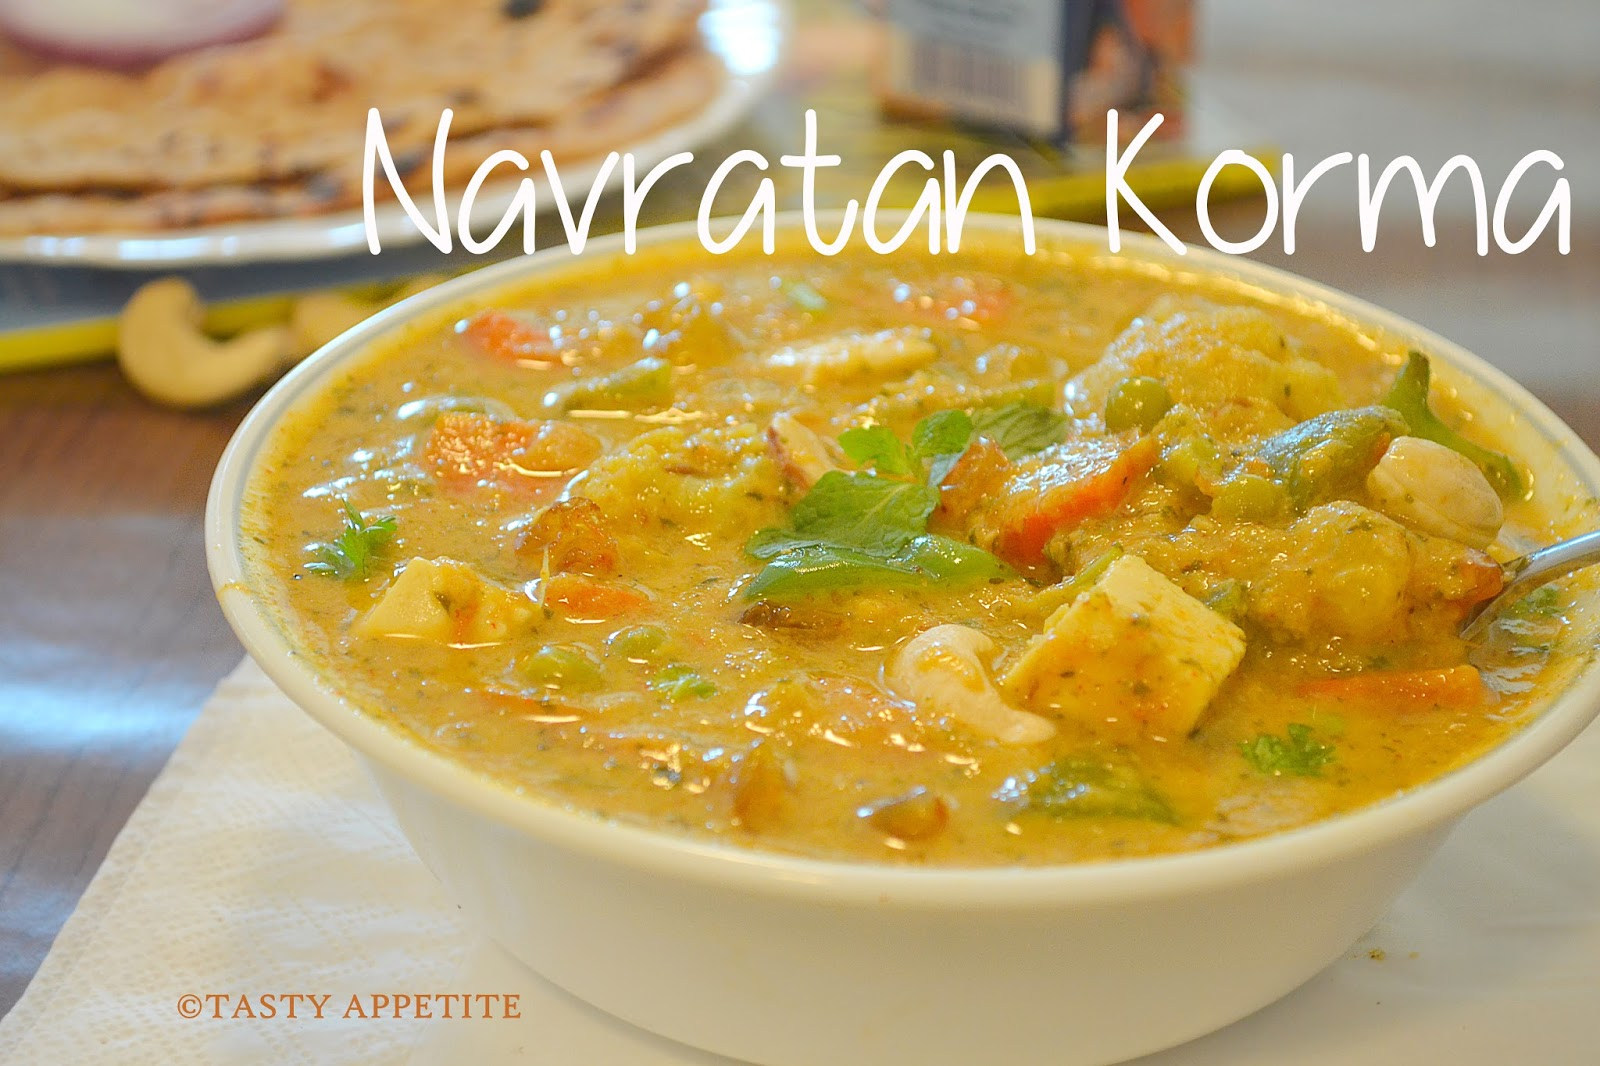 Navratna korma mixed veg curry side dish for roti naan navratna korma mixed veg curry side dish for roti naan forumfinder Gallery